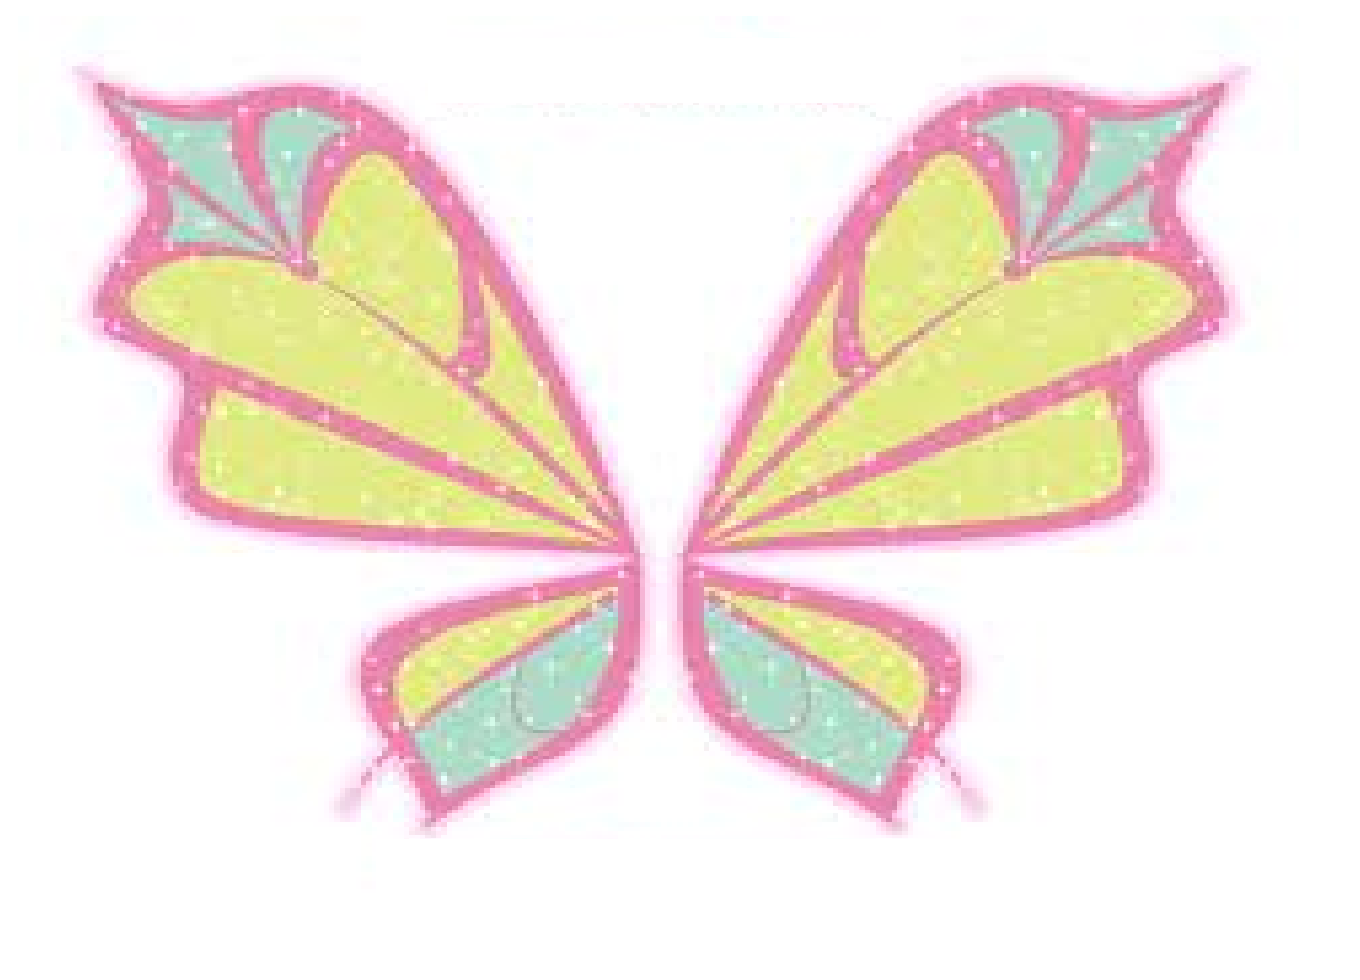 The winx club what wings do flora have the best